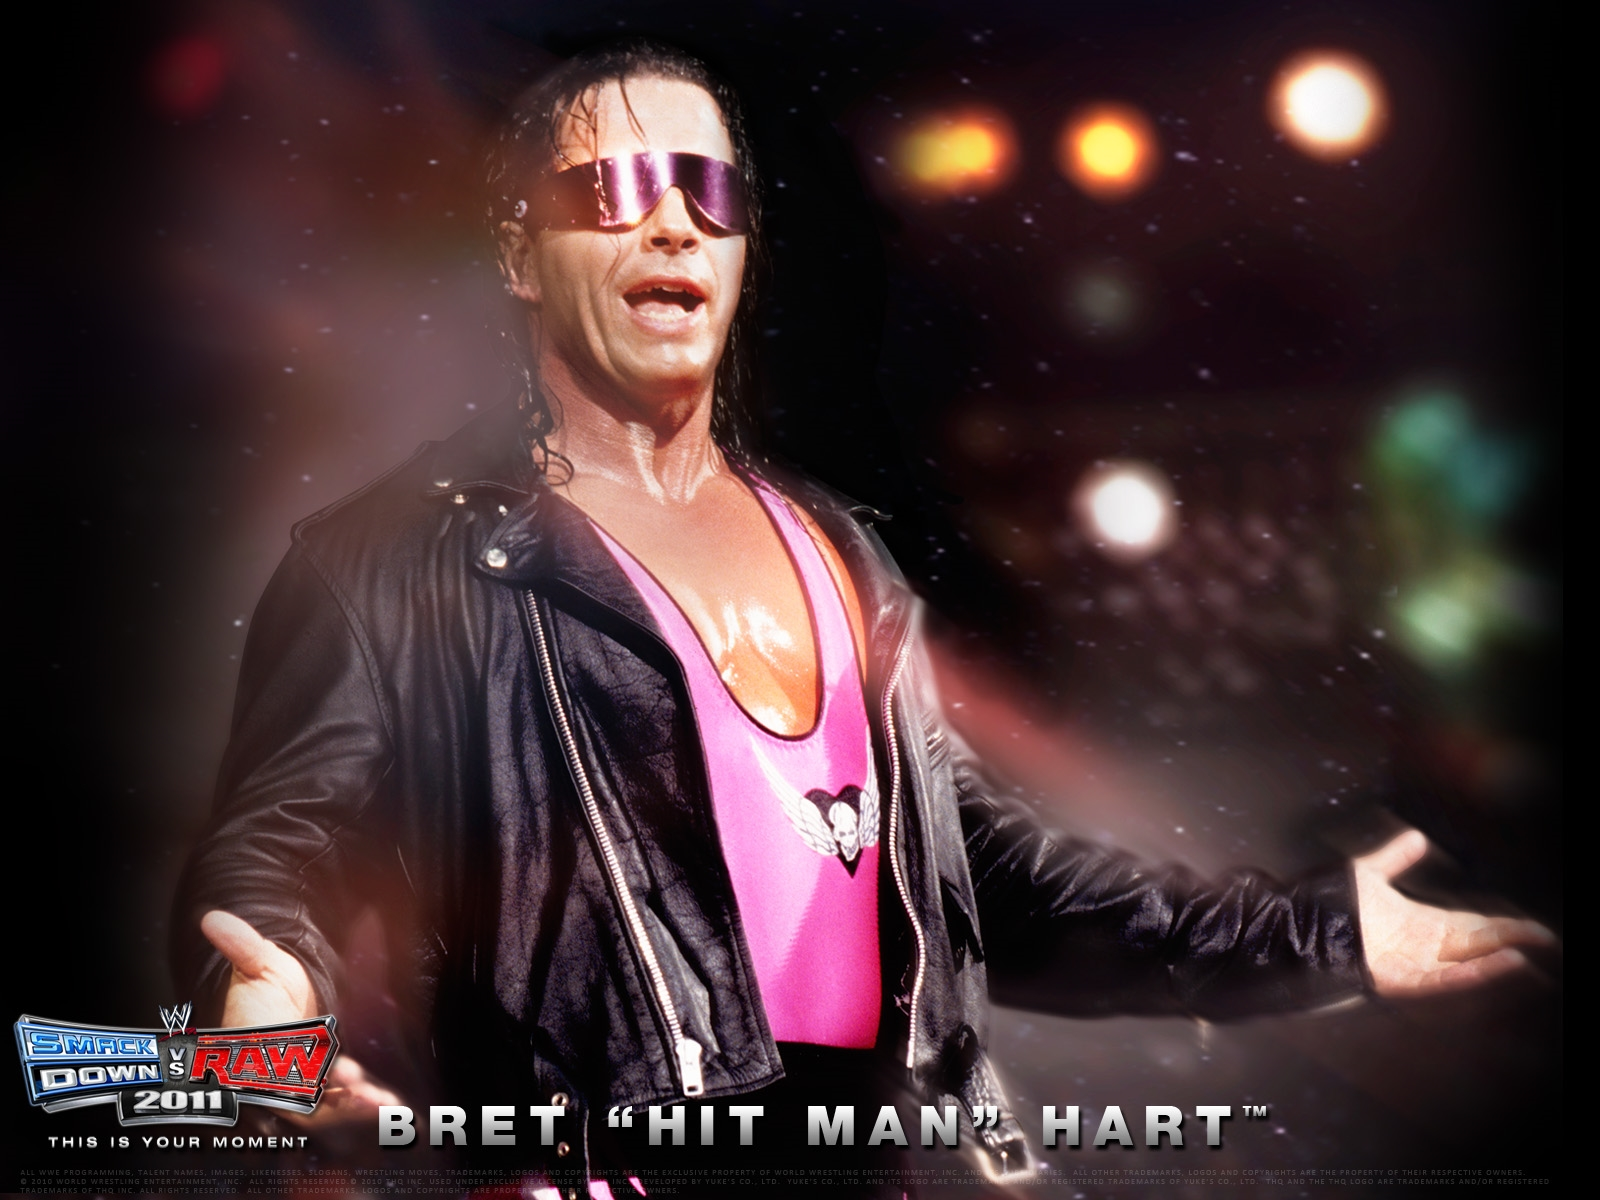 bret hart hit man wwe poster